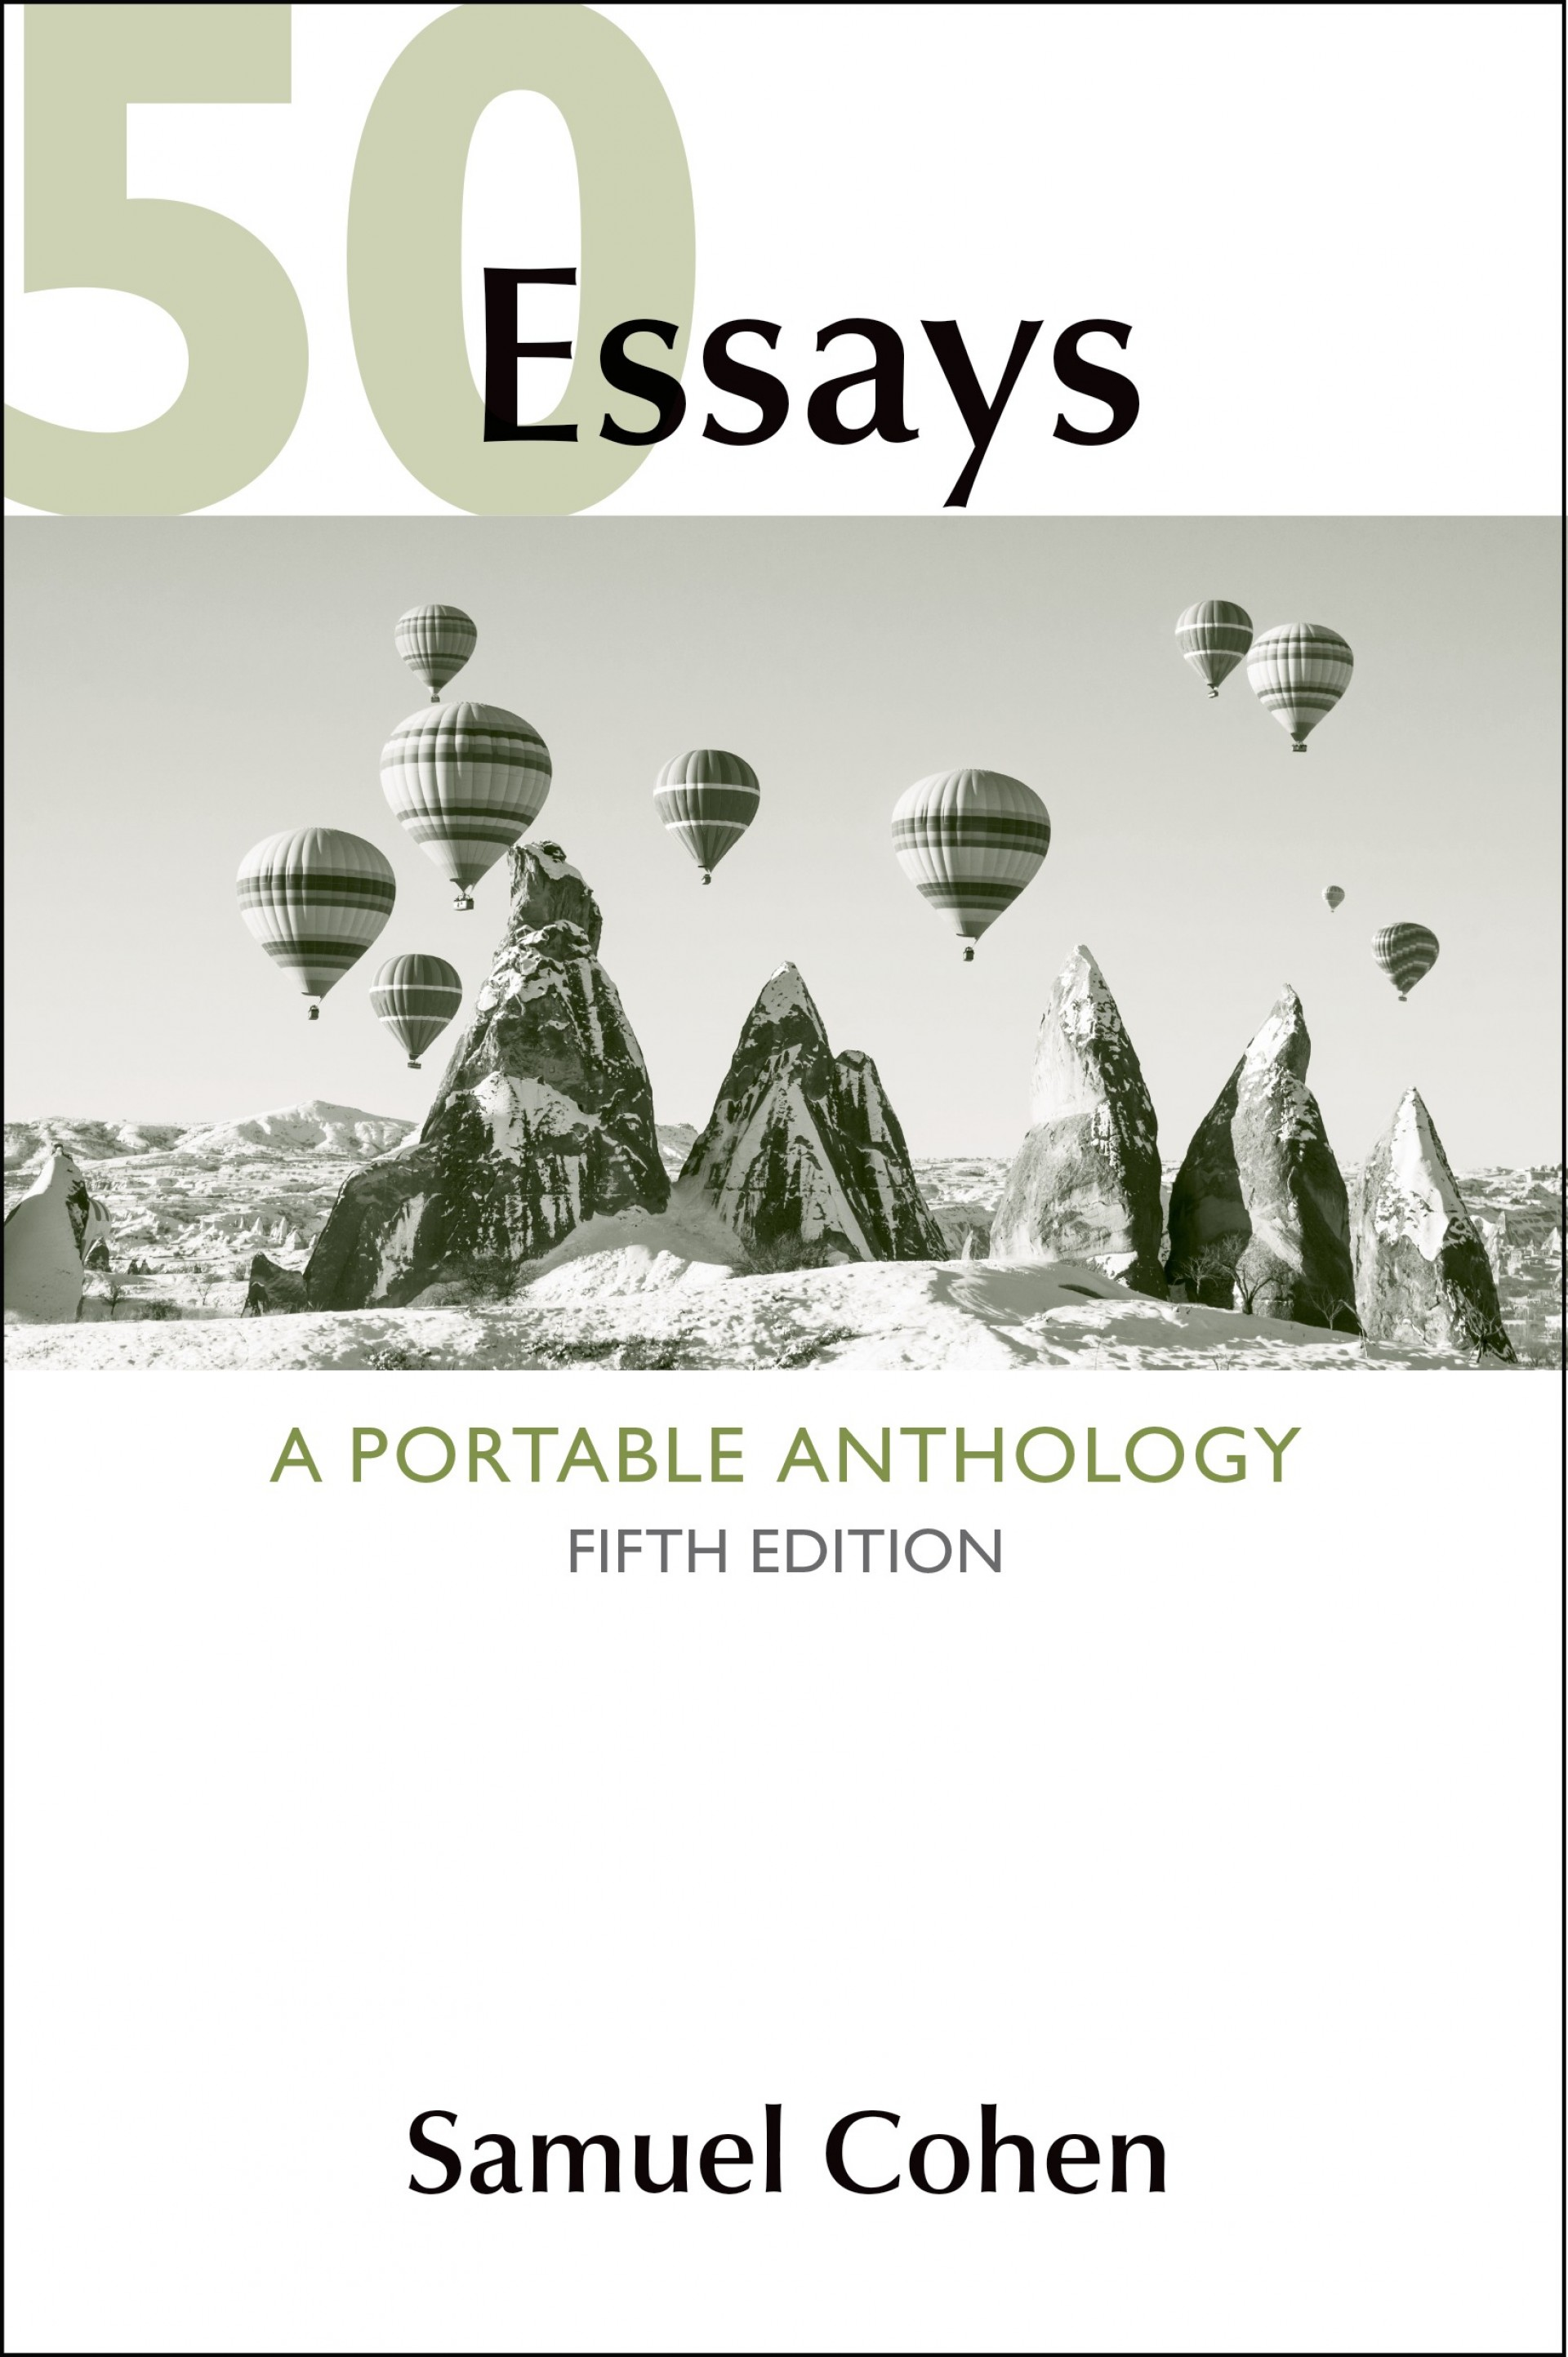 009 Essays Portable Anthology Essay Exceptional 50 A Ni Samuel Cohen Pdf 5th Edition Answers Answer Key 1920